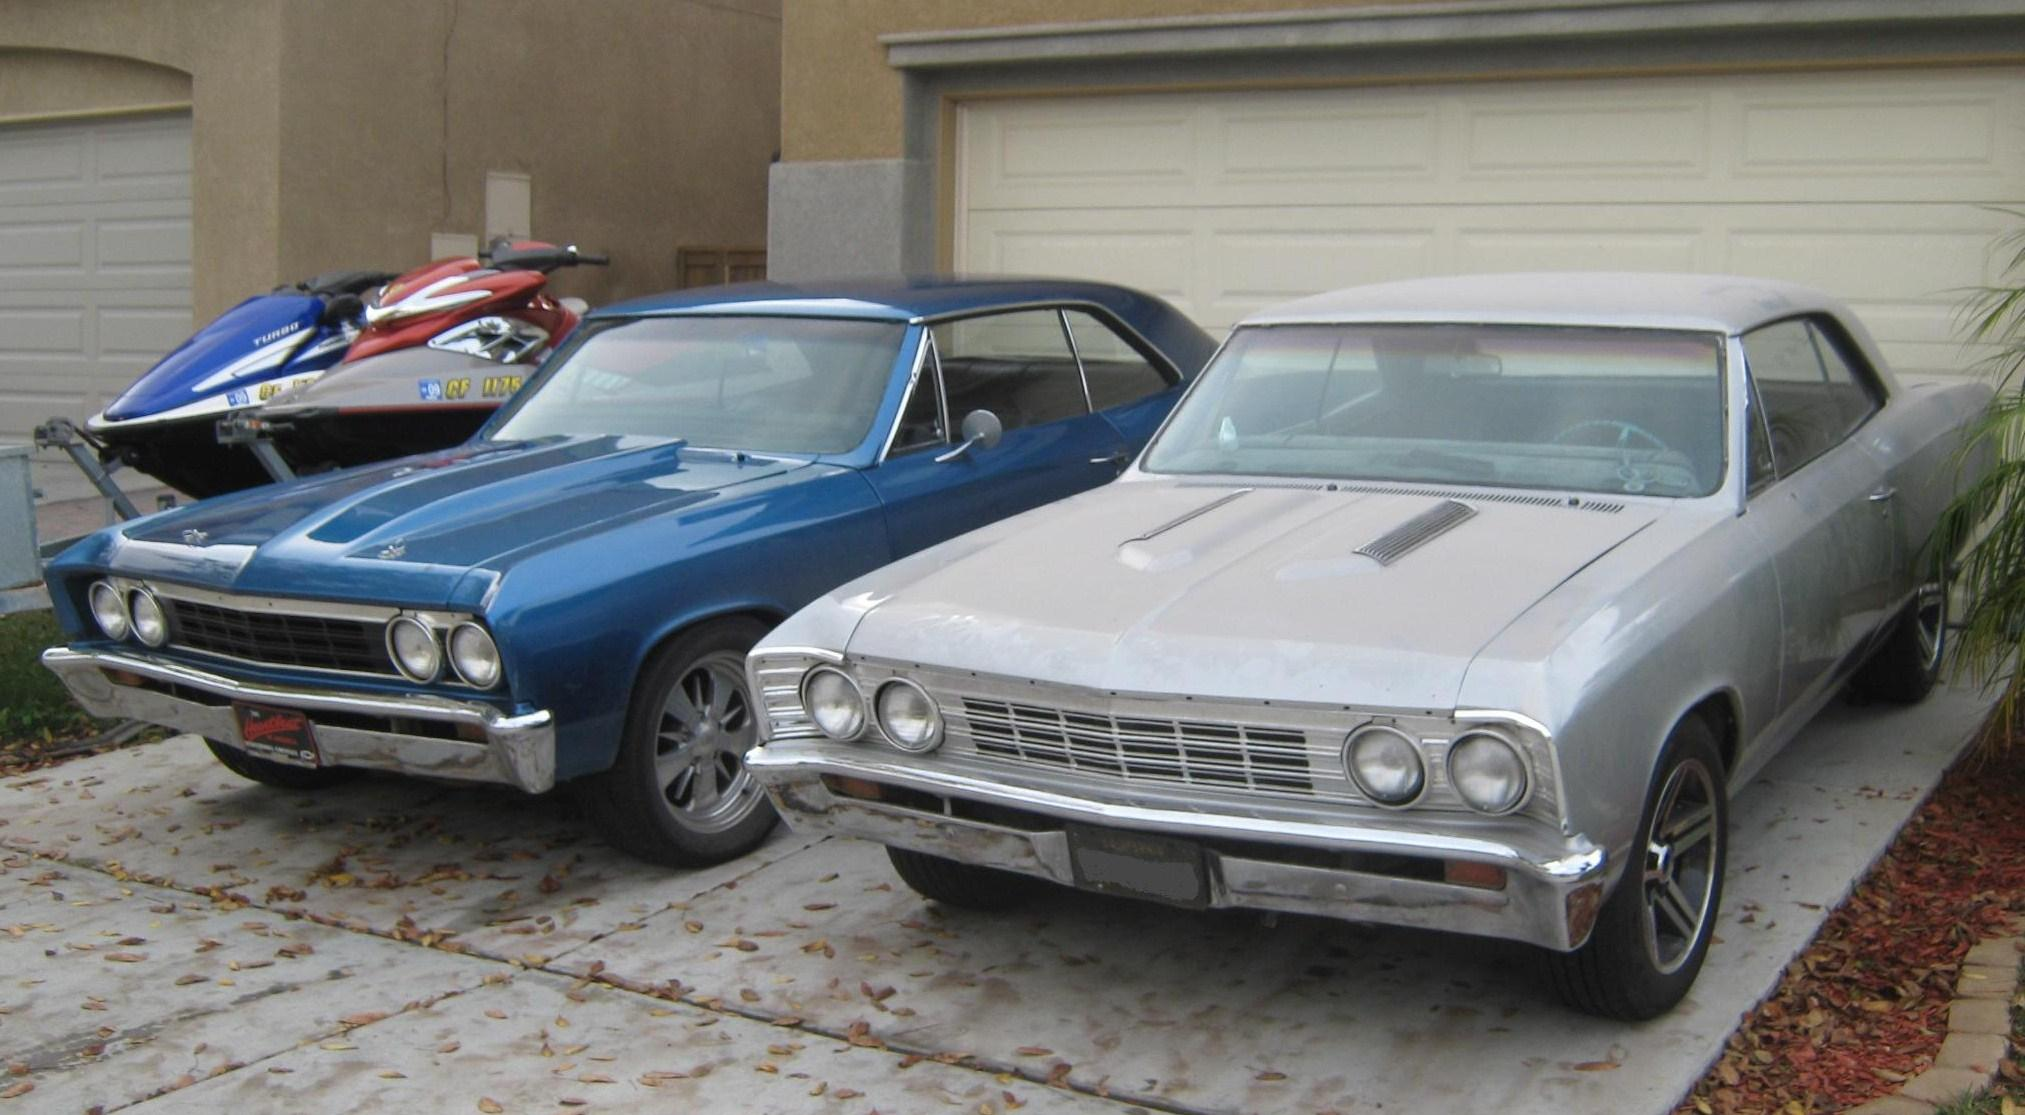 1970 Chevrolet Chevelle - Pictures - CarGurus 1967 chevelle pictures and videos